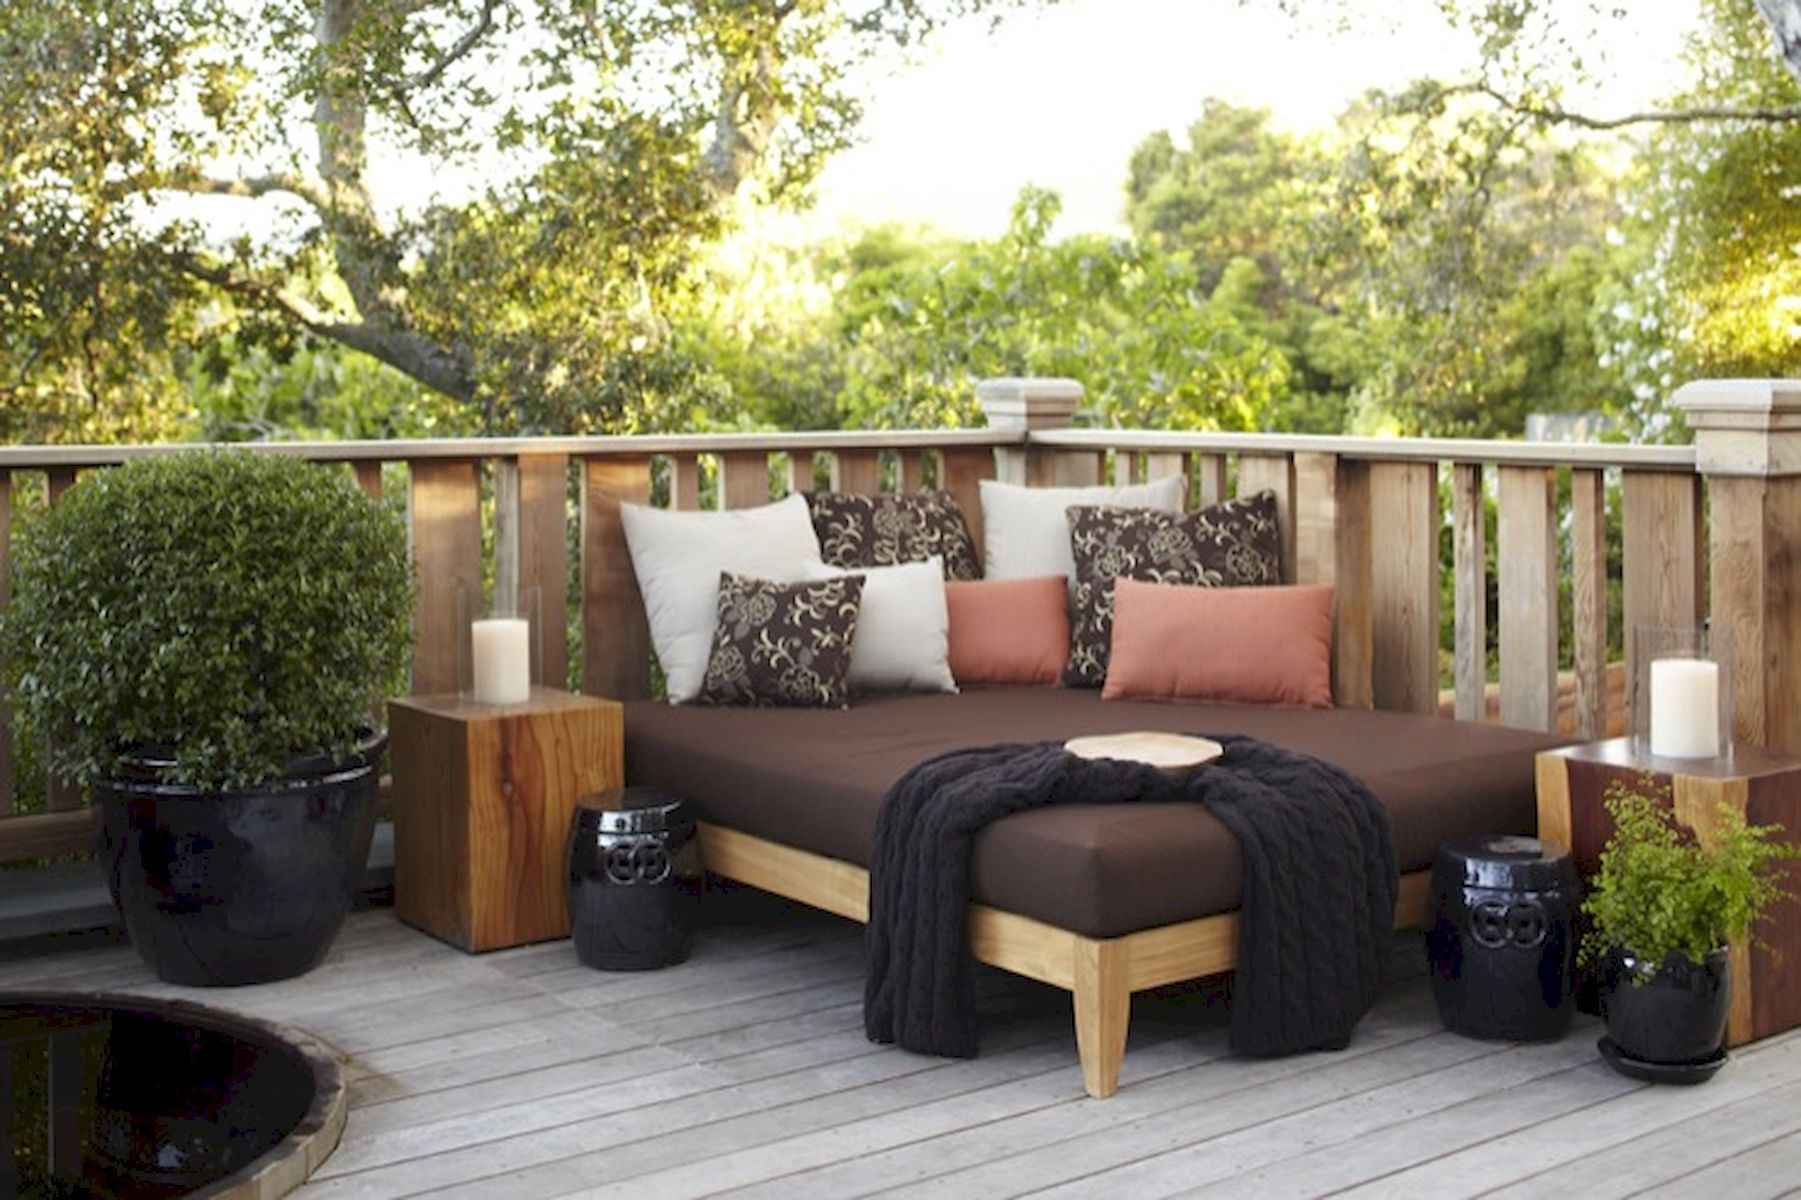 80 DIY Summery Backyard Projects Ideas Make Your Summer Awesome (12)